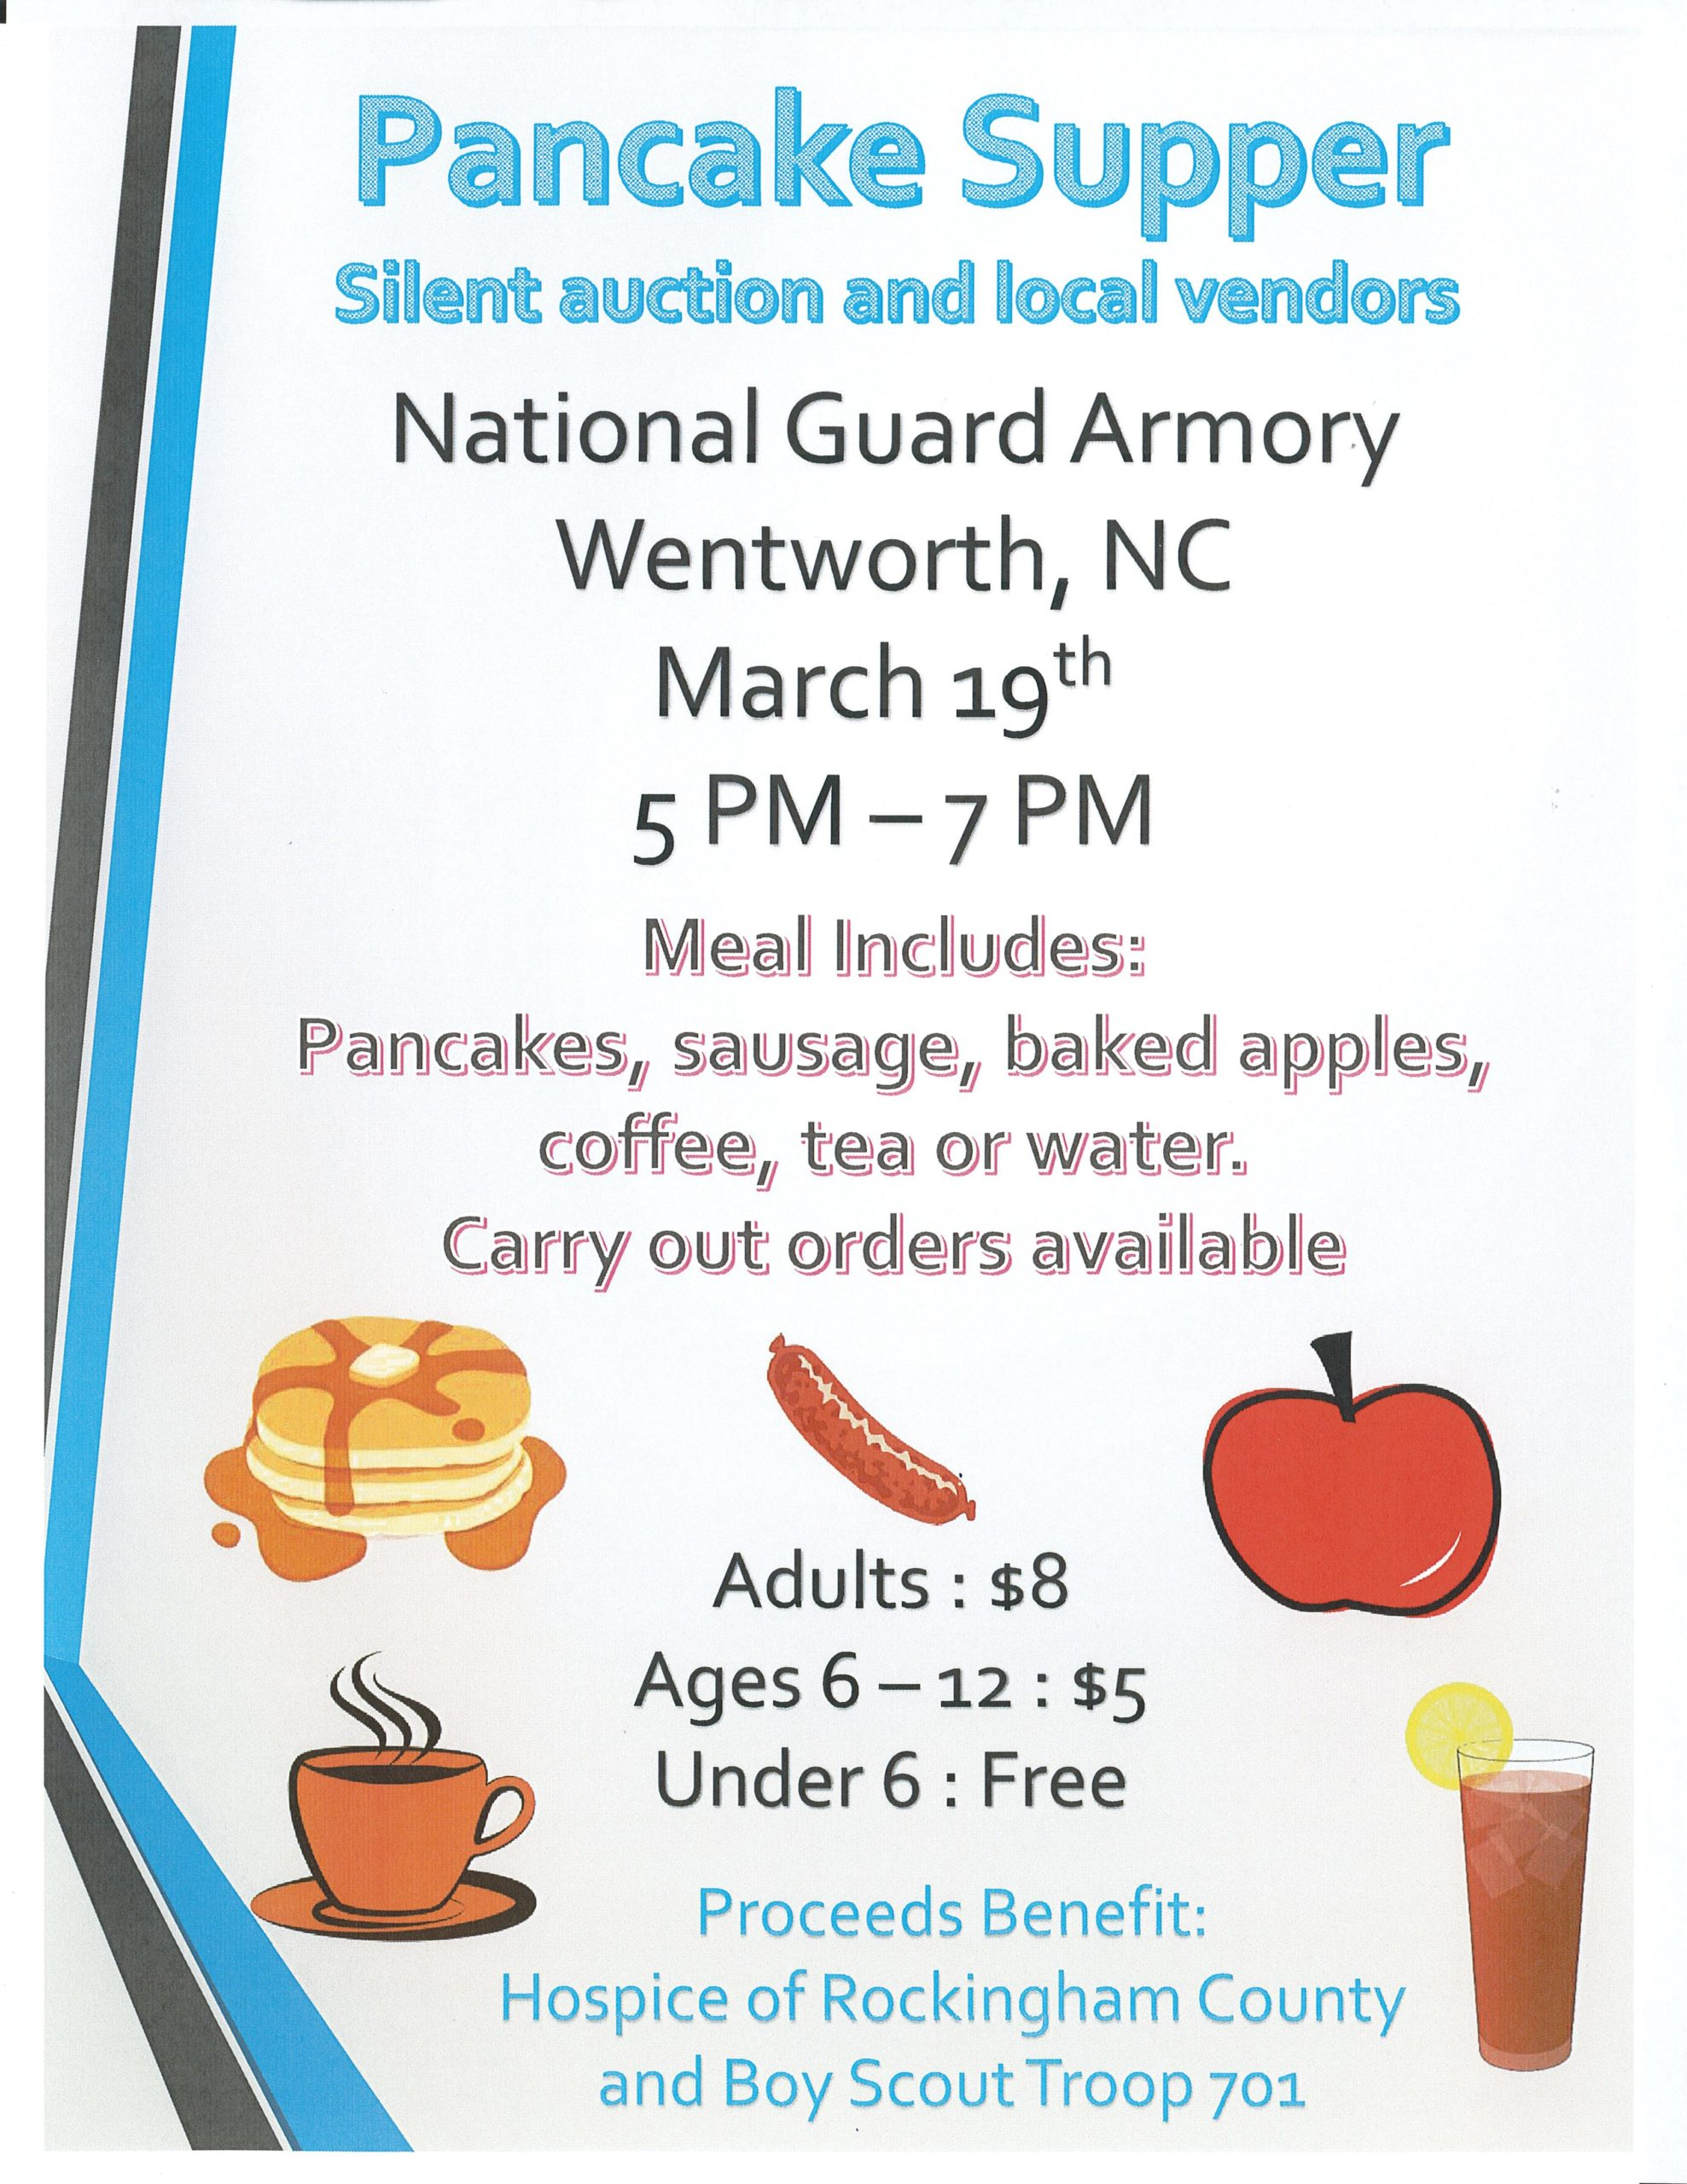 POSTPONED - Pancake Supper & Silent Auction @ National Guard Armory